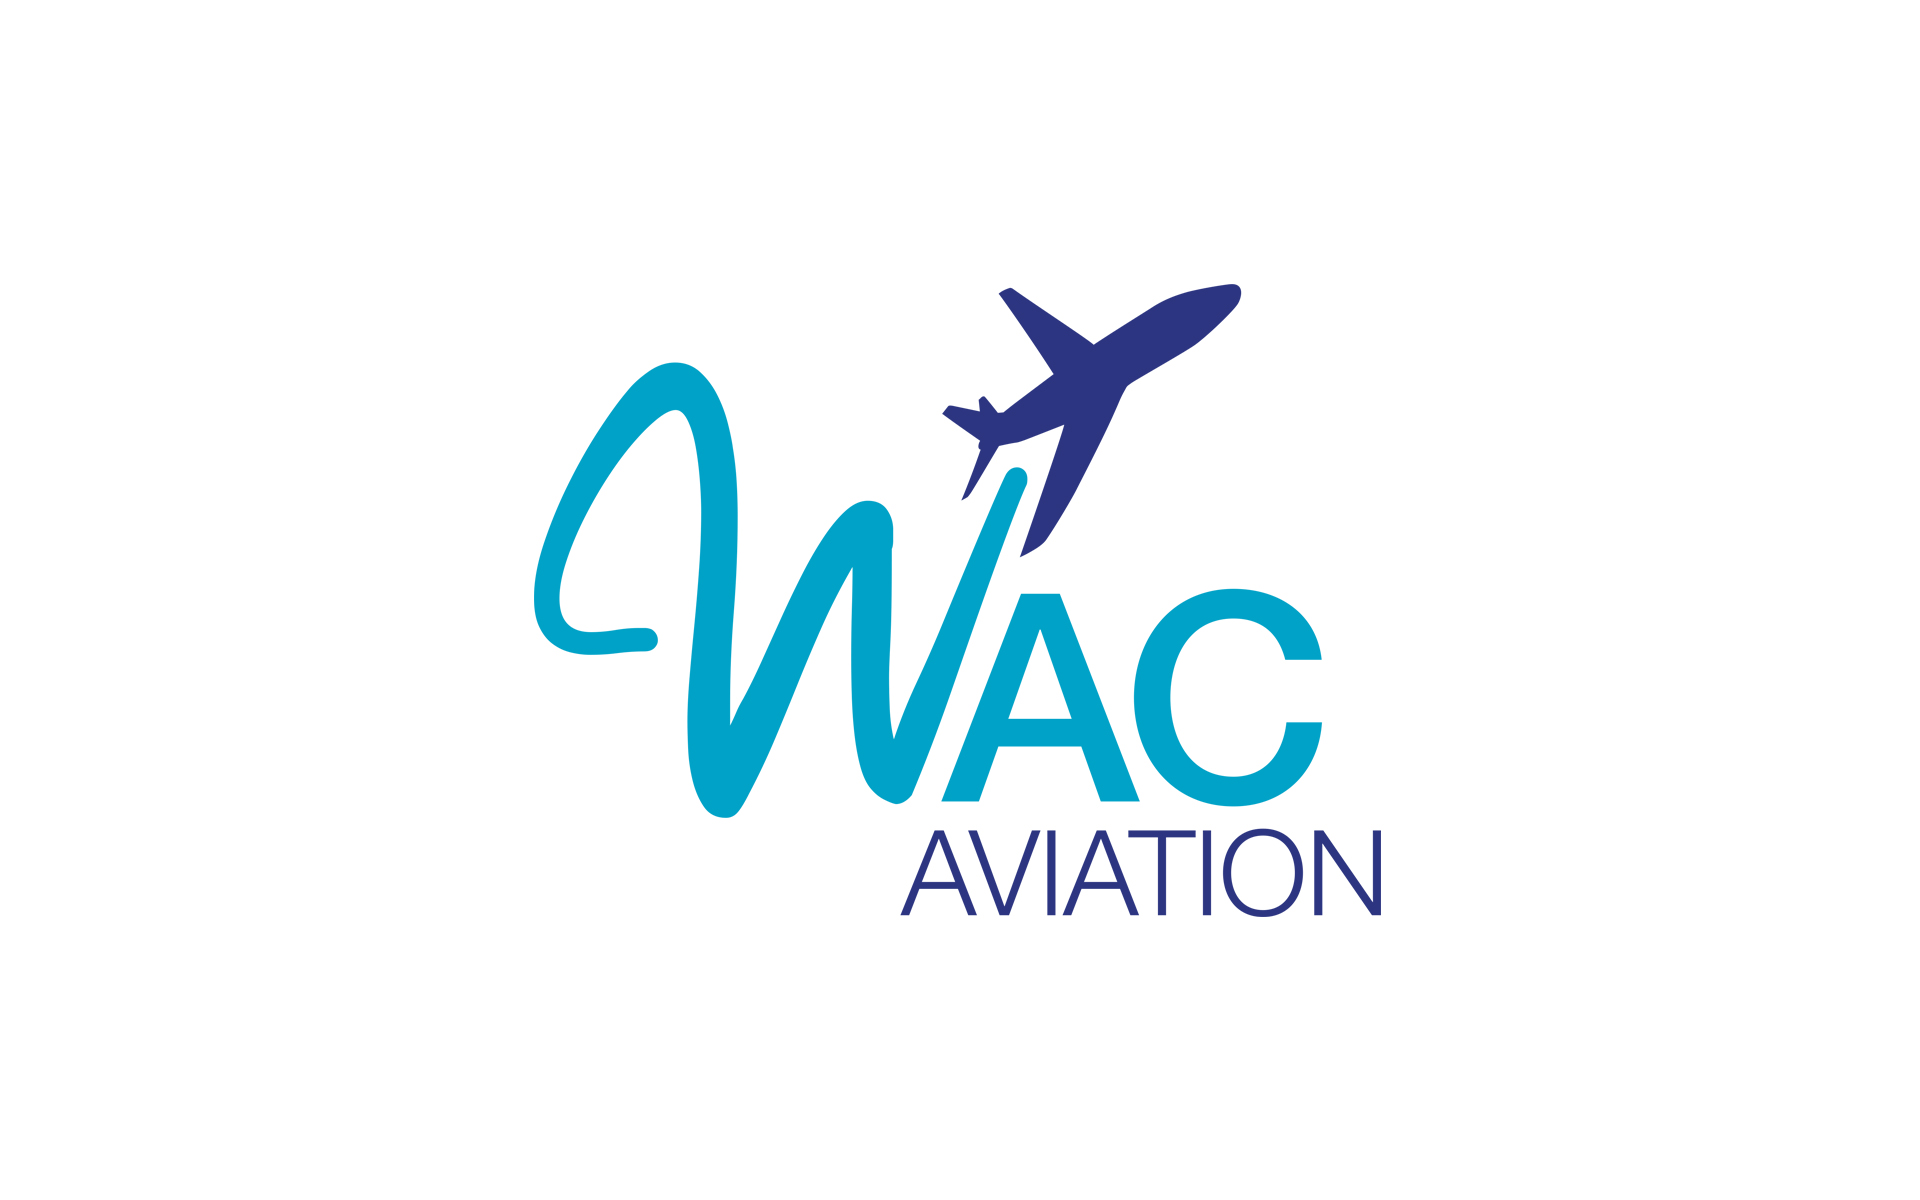 WAC_Aviation